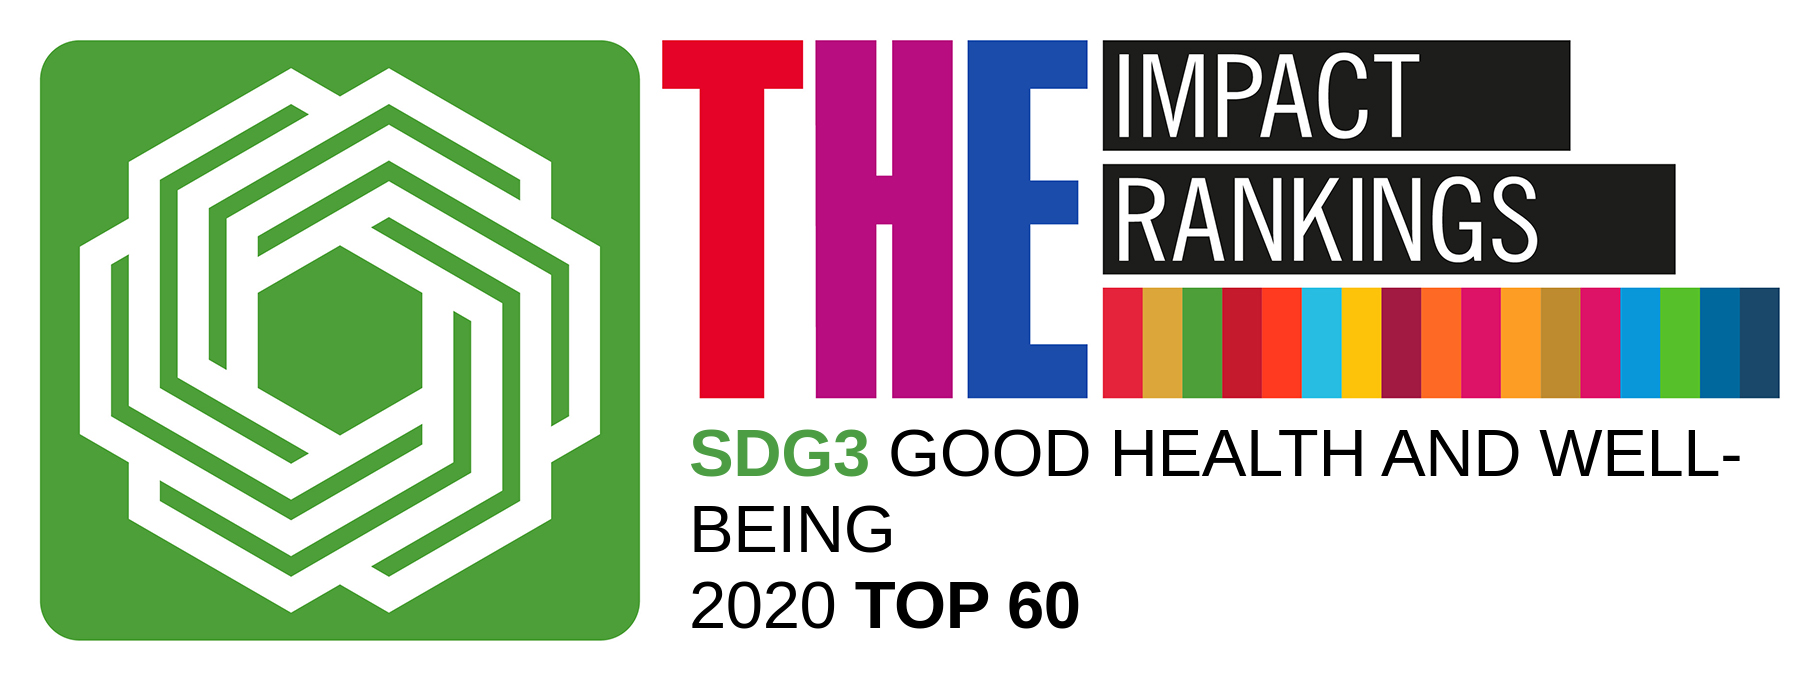 SDG3_Good_Health_Wellbeing_Top_60.png